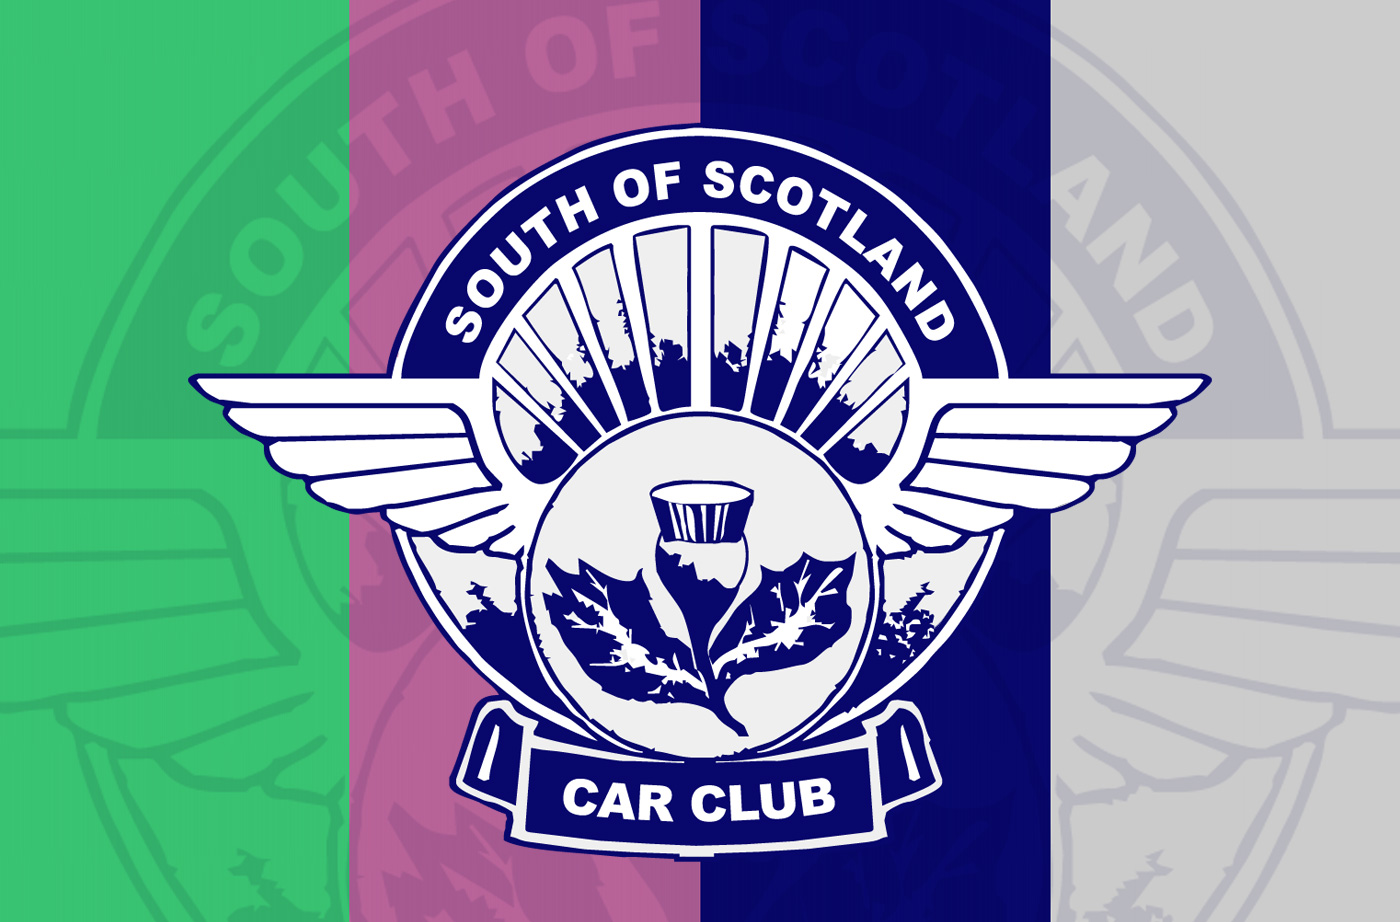 South of Scotland Car Club AGM